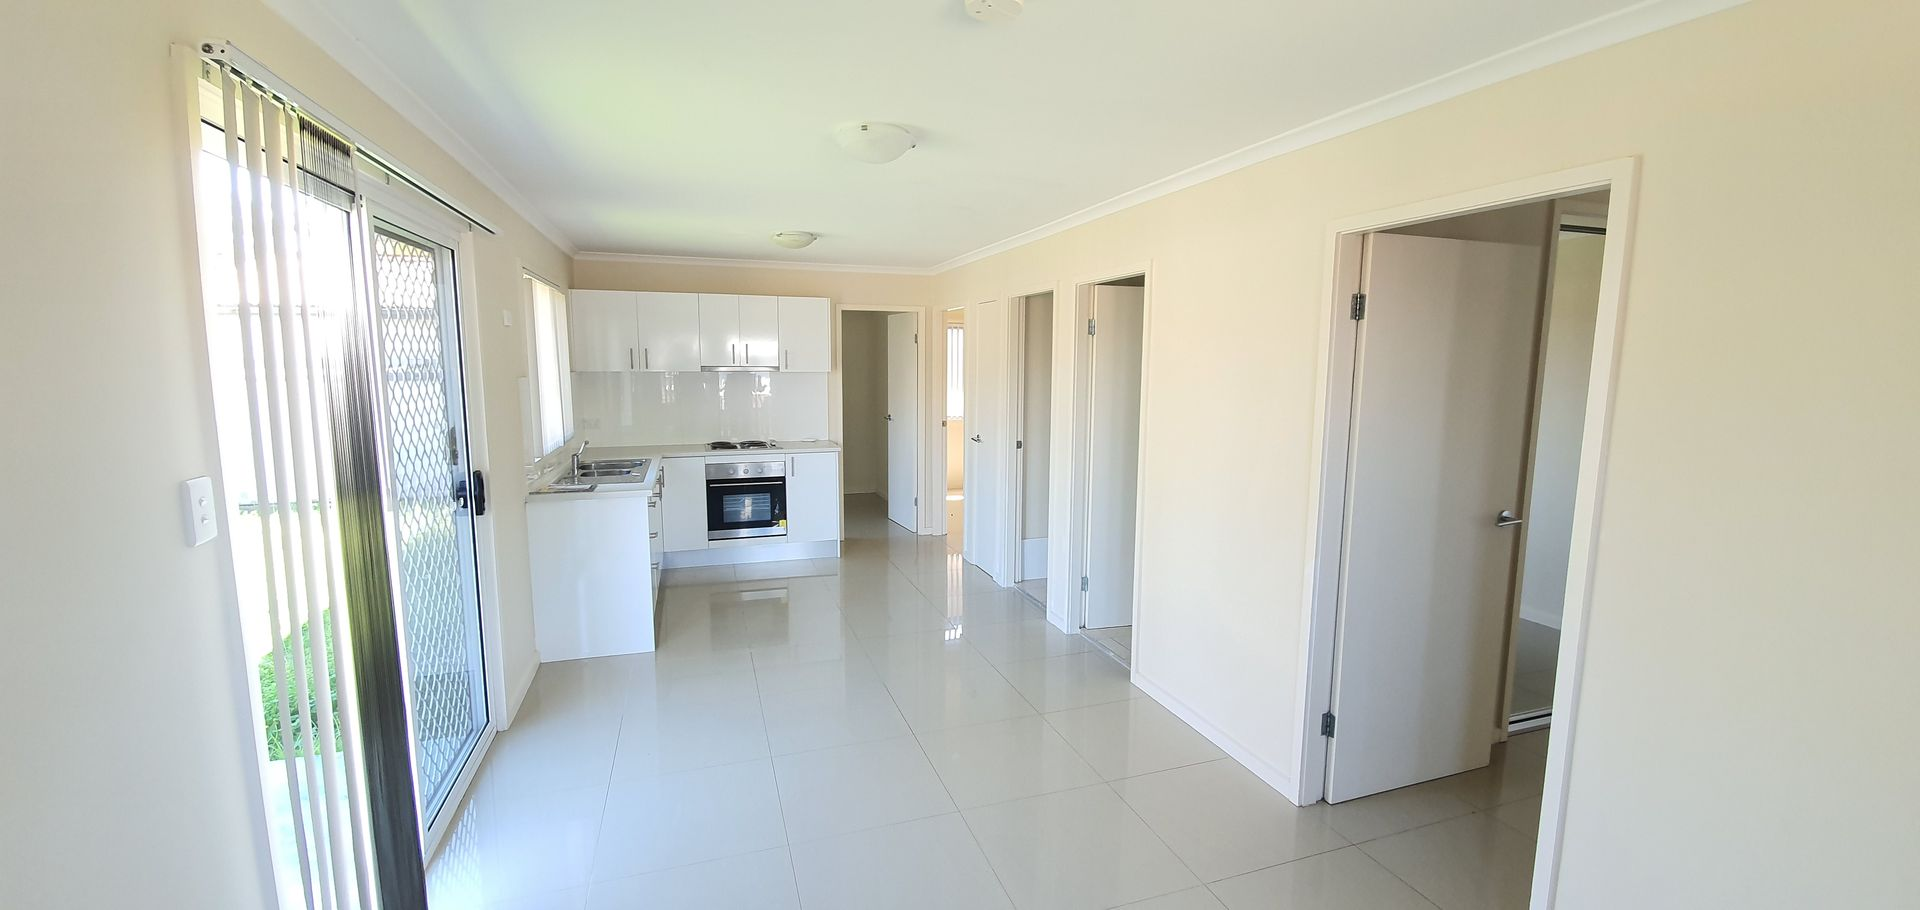 84a Neriba Crescent, Whalan NSW 2770, Image 1